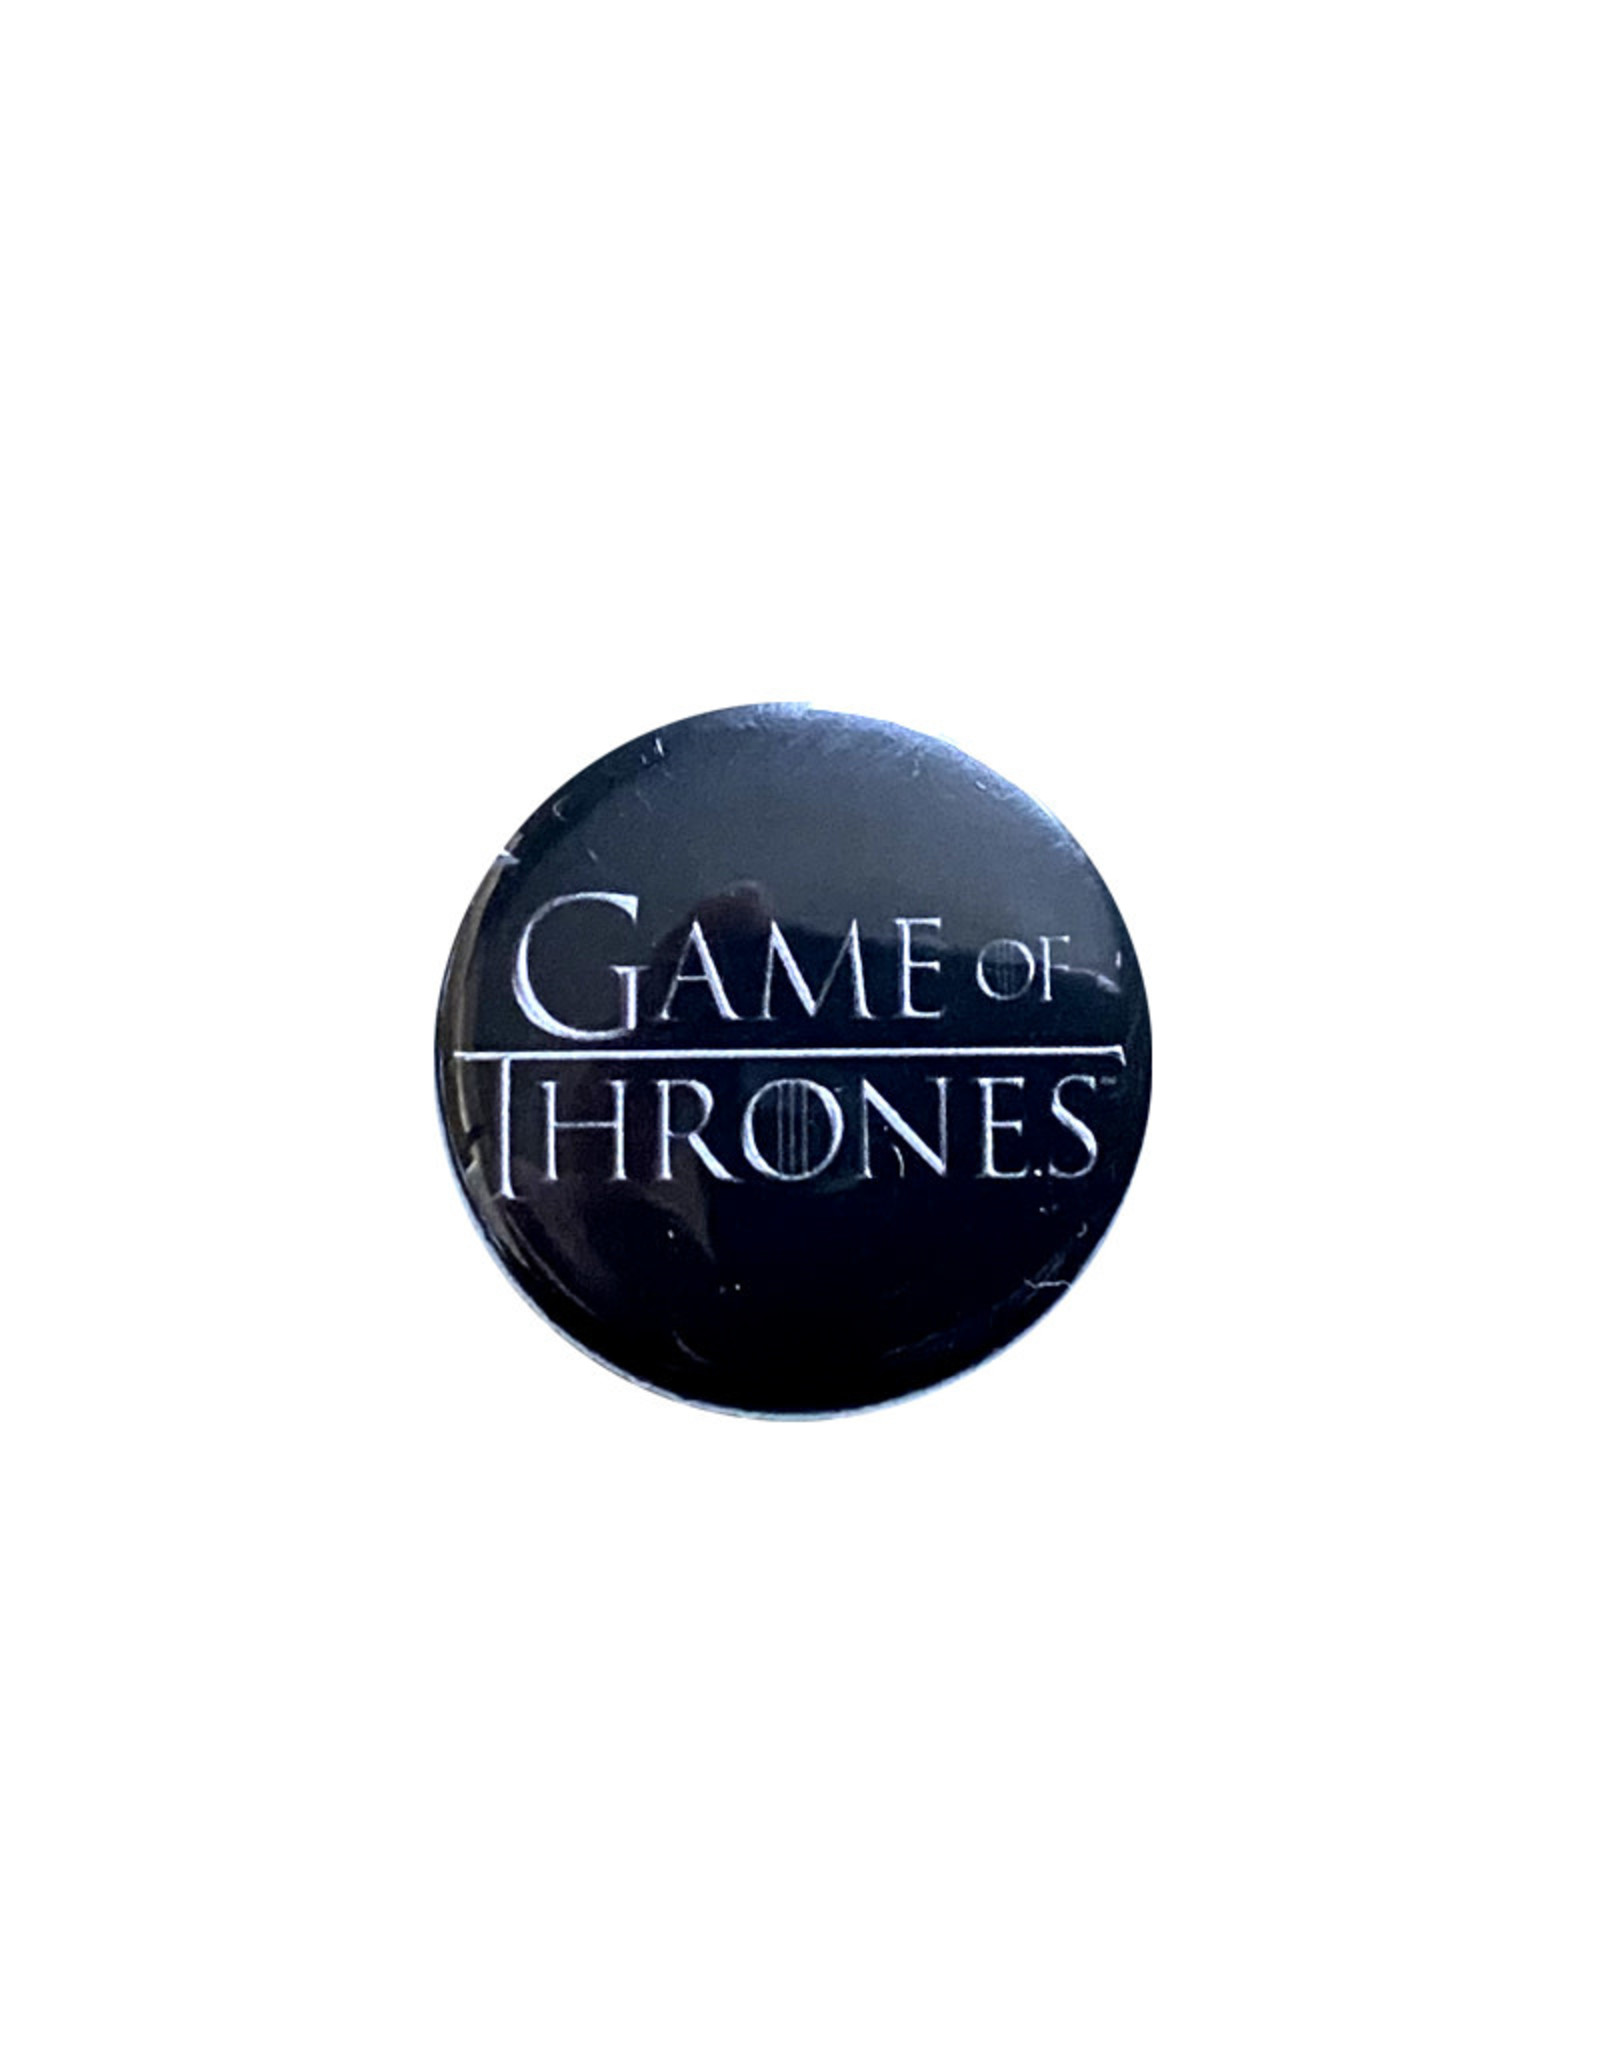 Game of thrones Game of Thrones ( Mini Button )